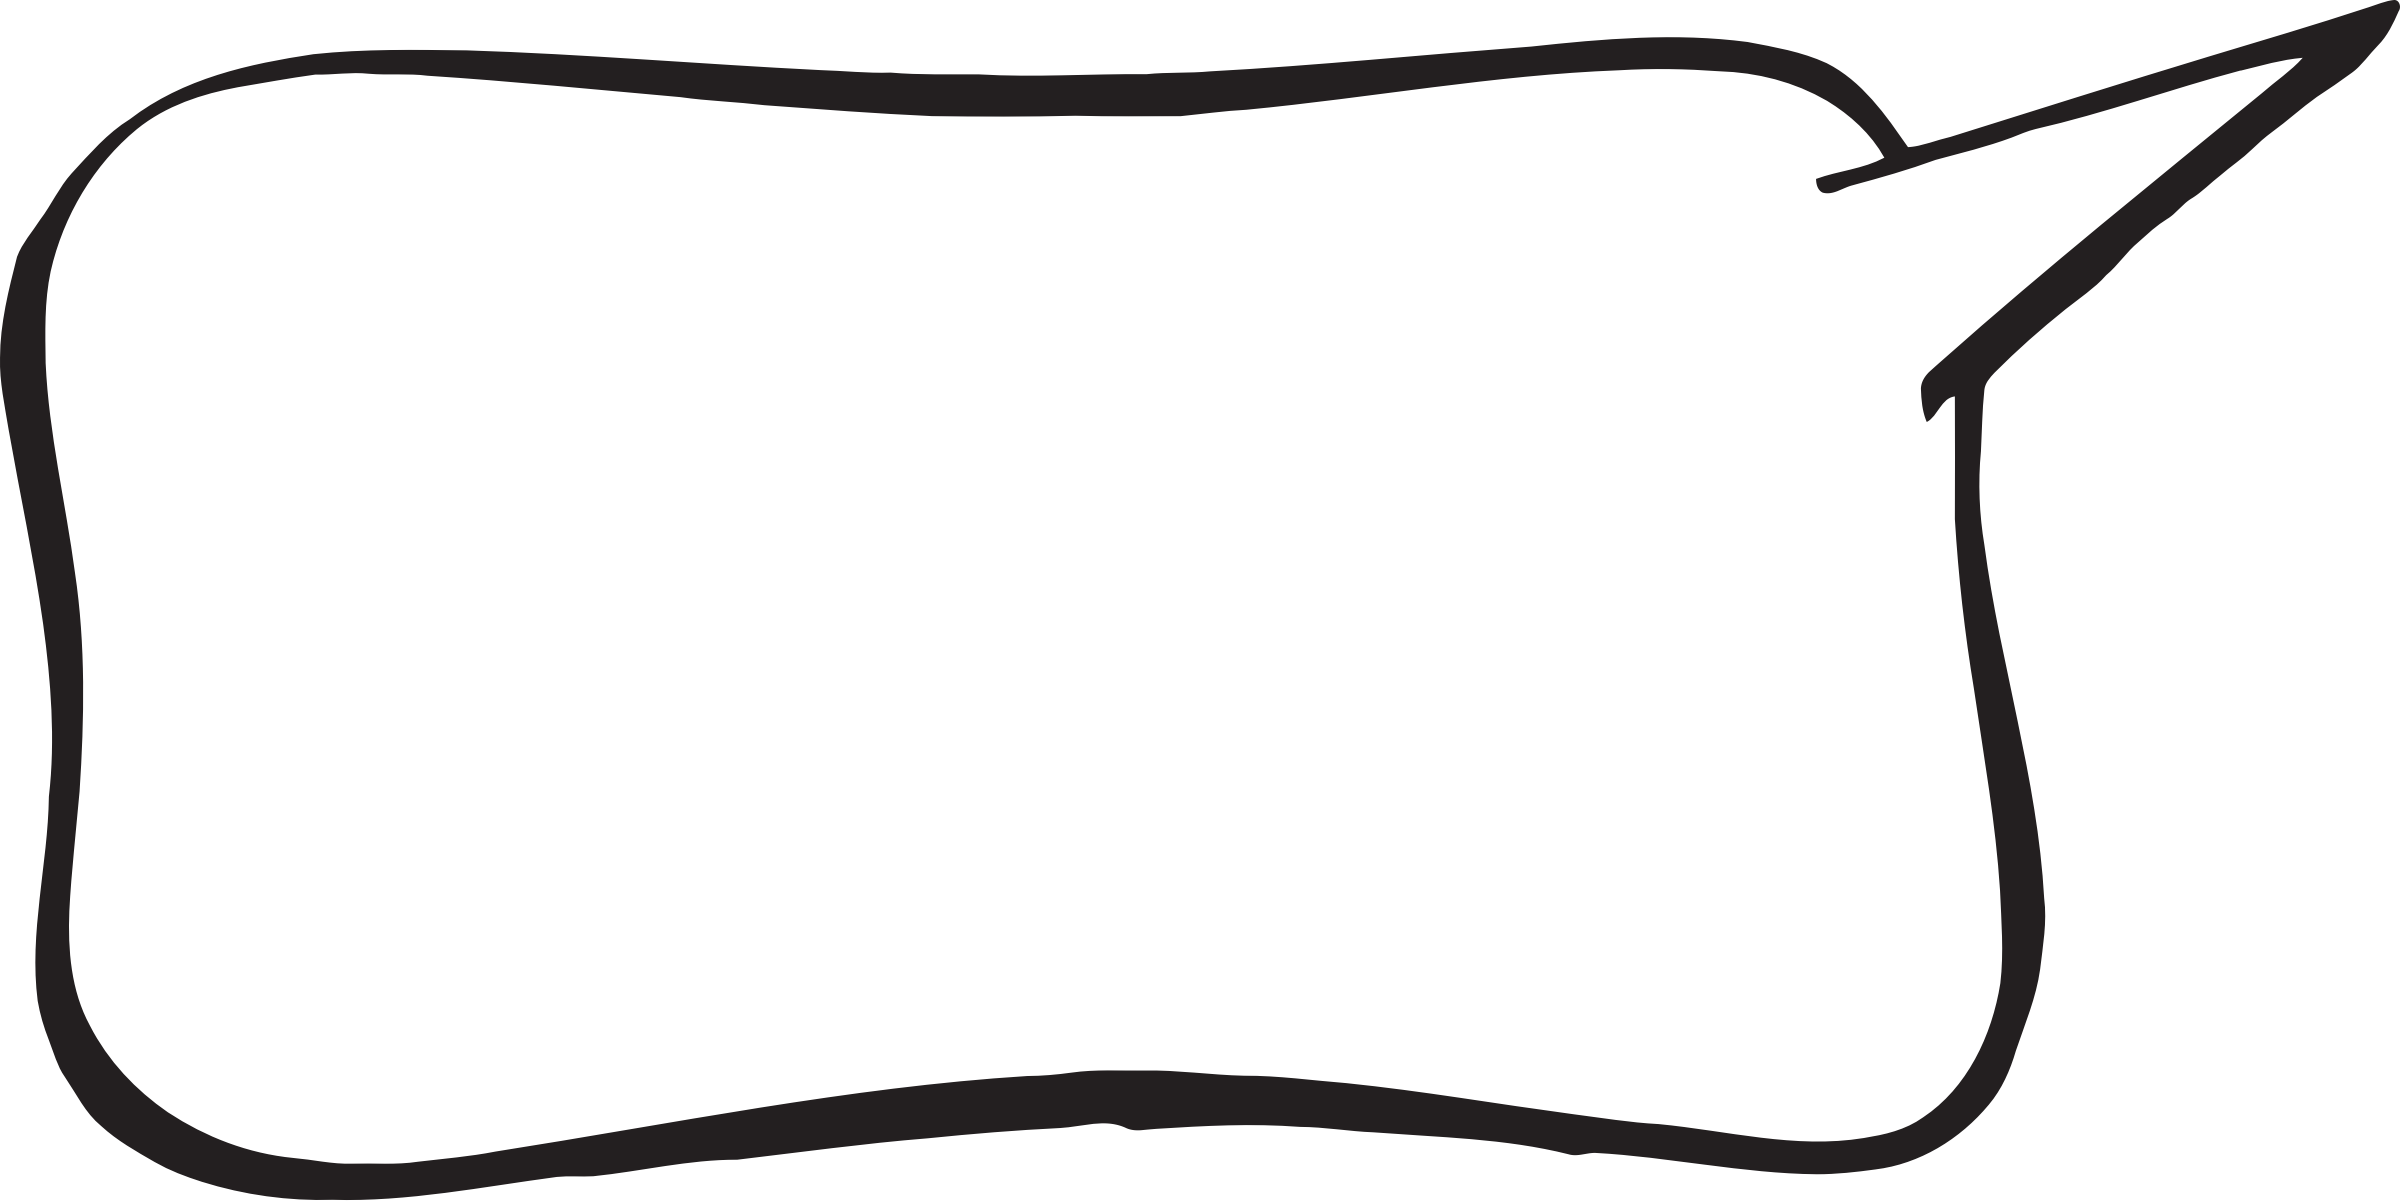 Transparent textbox. Png text box images